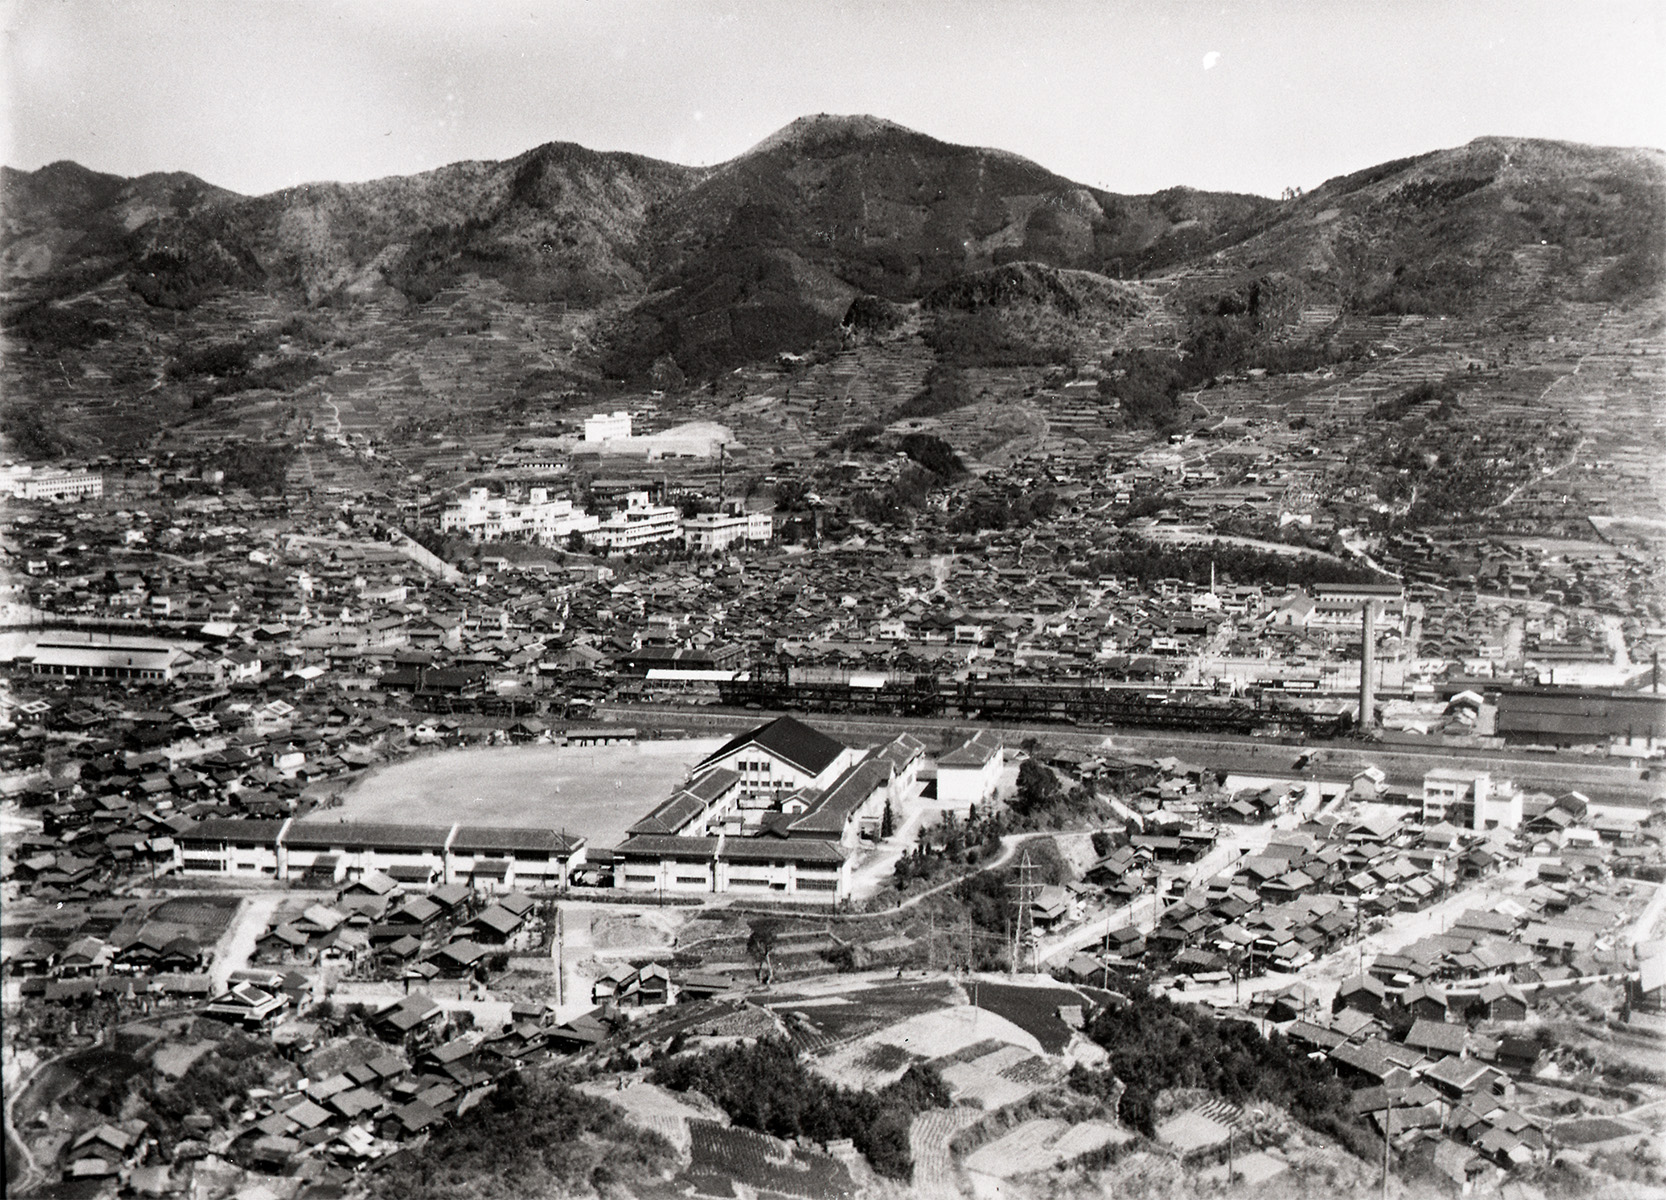 View to the Urban Area of Nagasaki from the Mid-slope of Mt. Inasa ―Nagasaki Nishi High School―